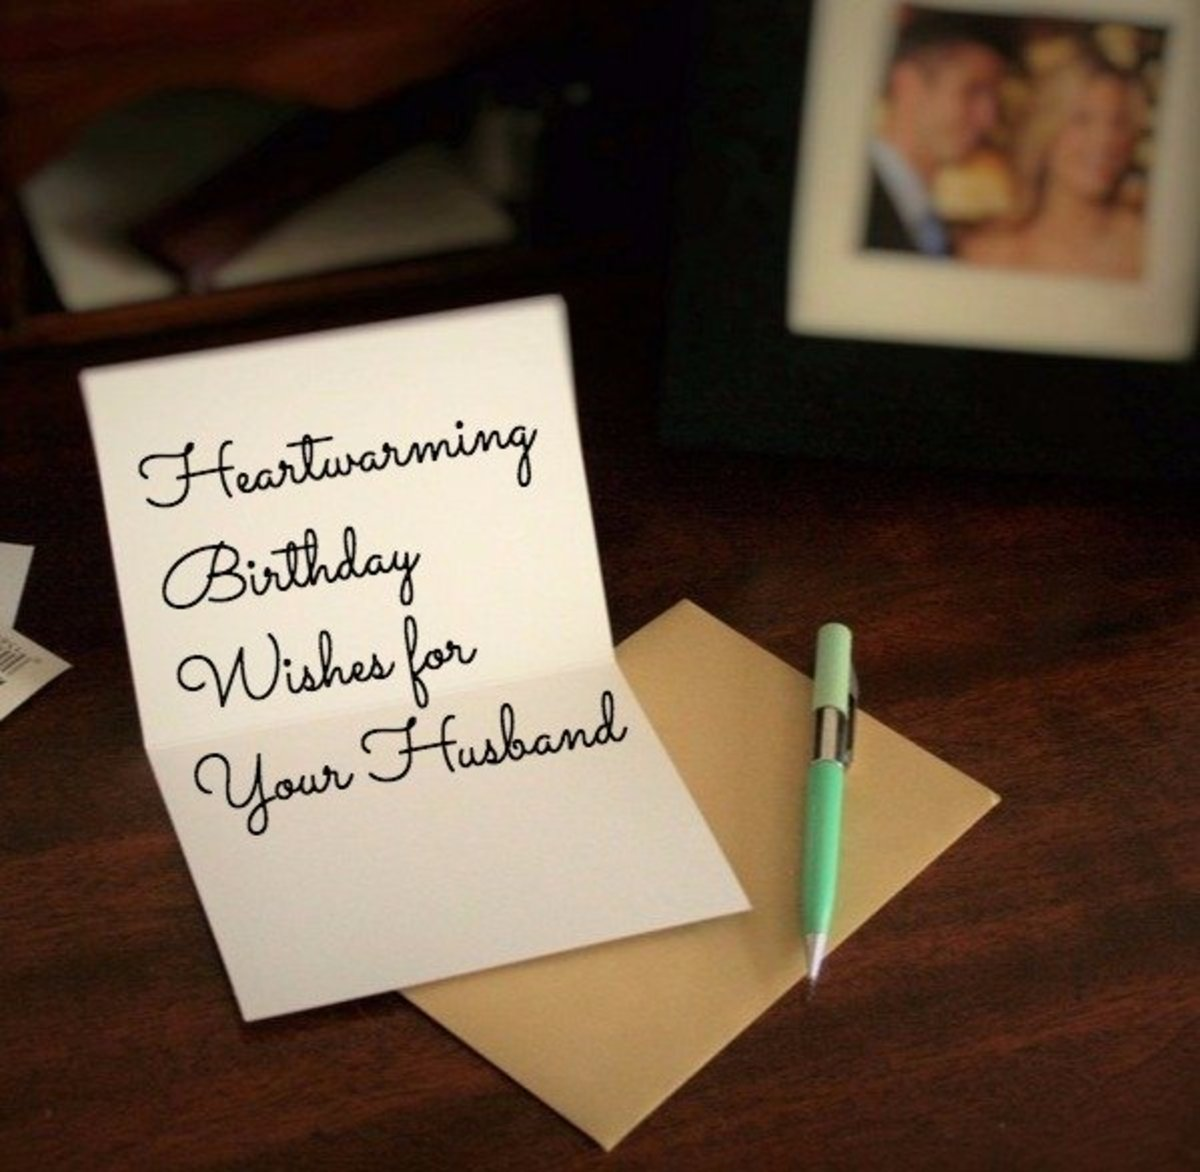 If you're having trouble deciding what to say to your husband on his birthday, you can turn to this article for many examples of heartfelt wishes and messages.